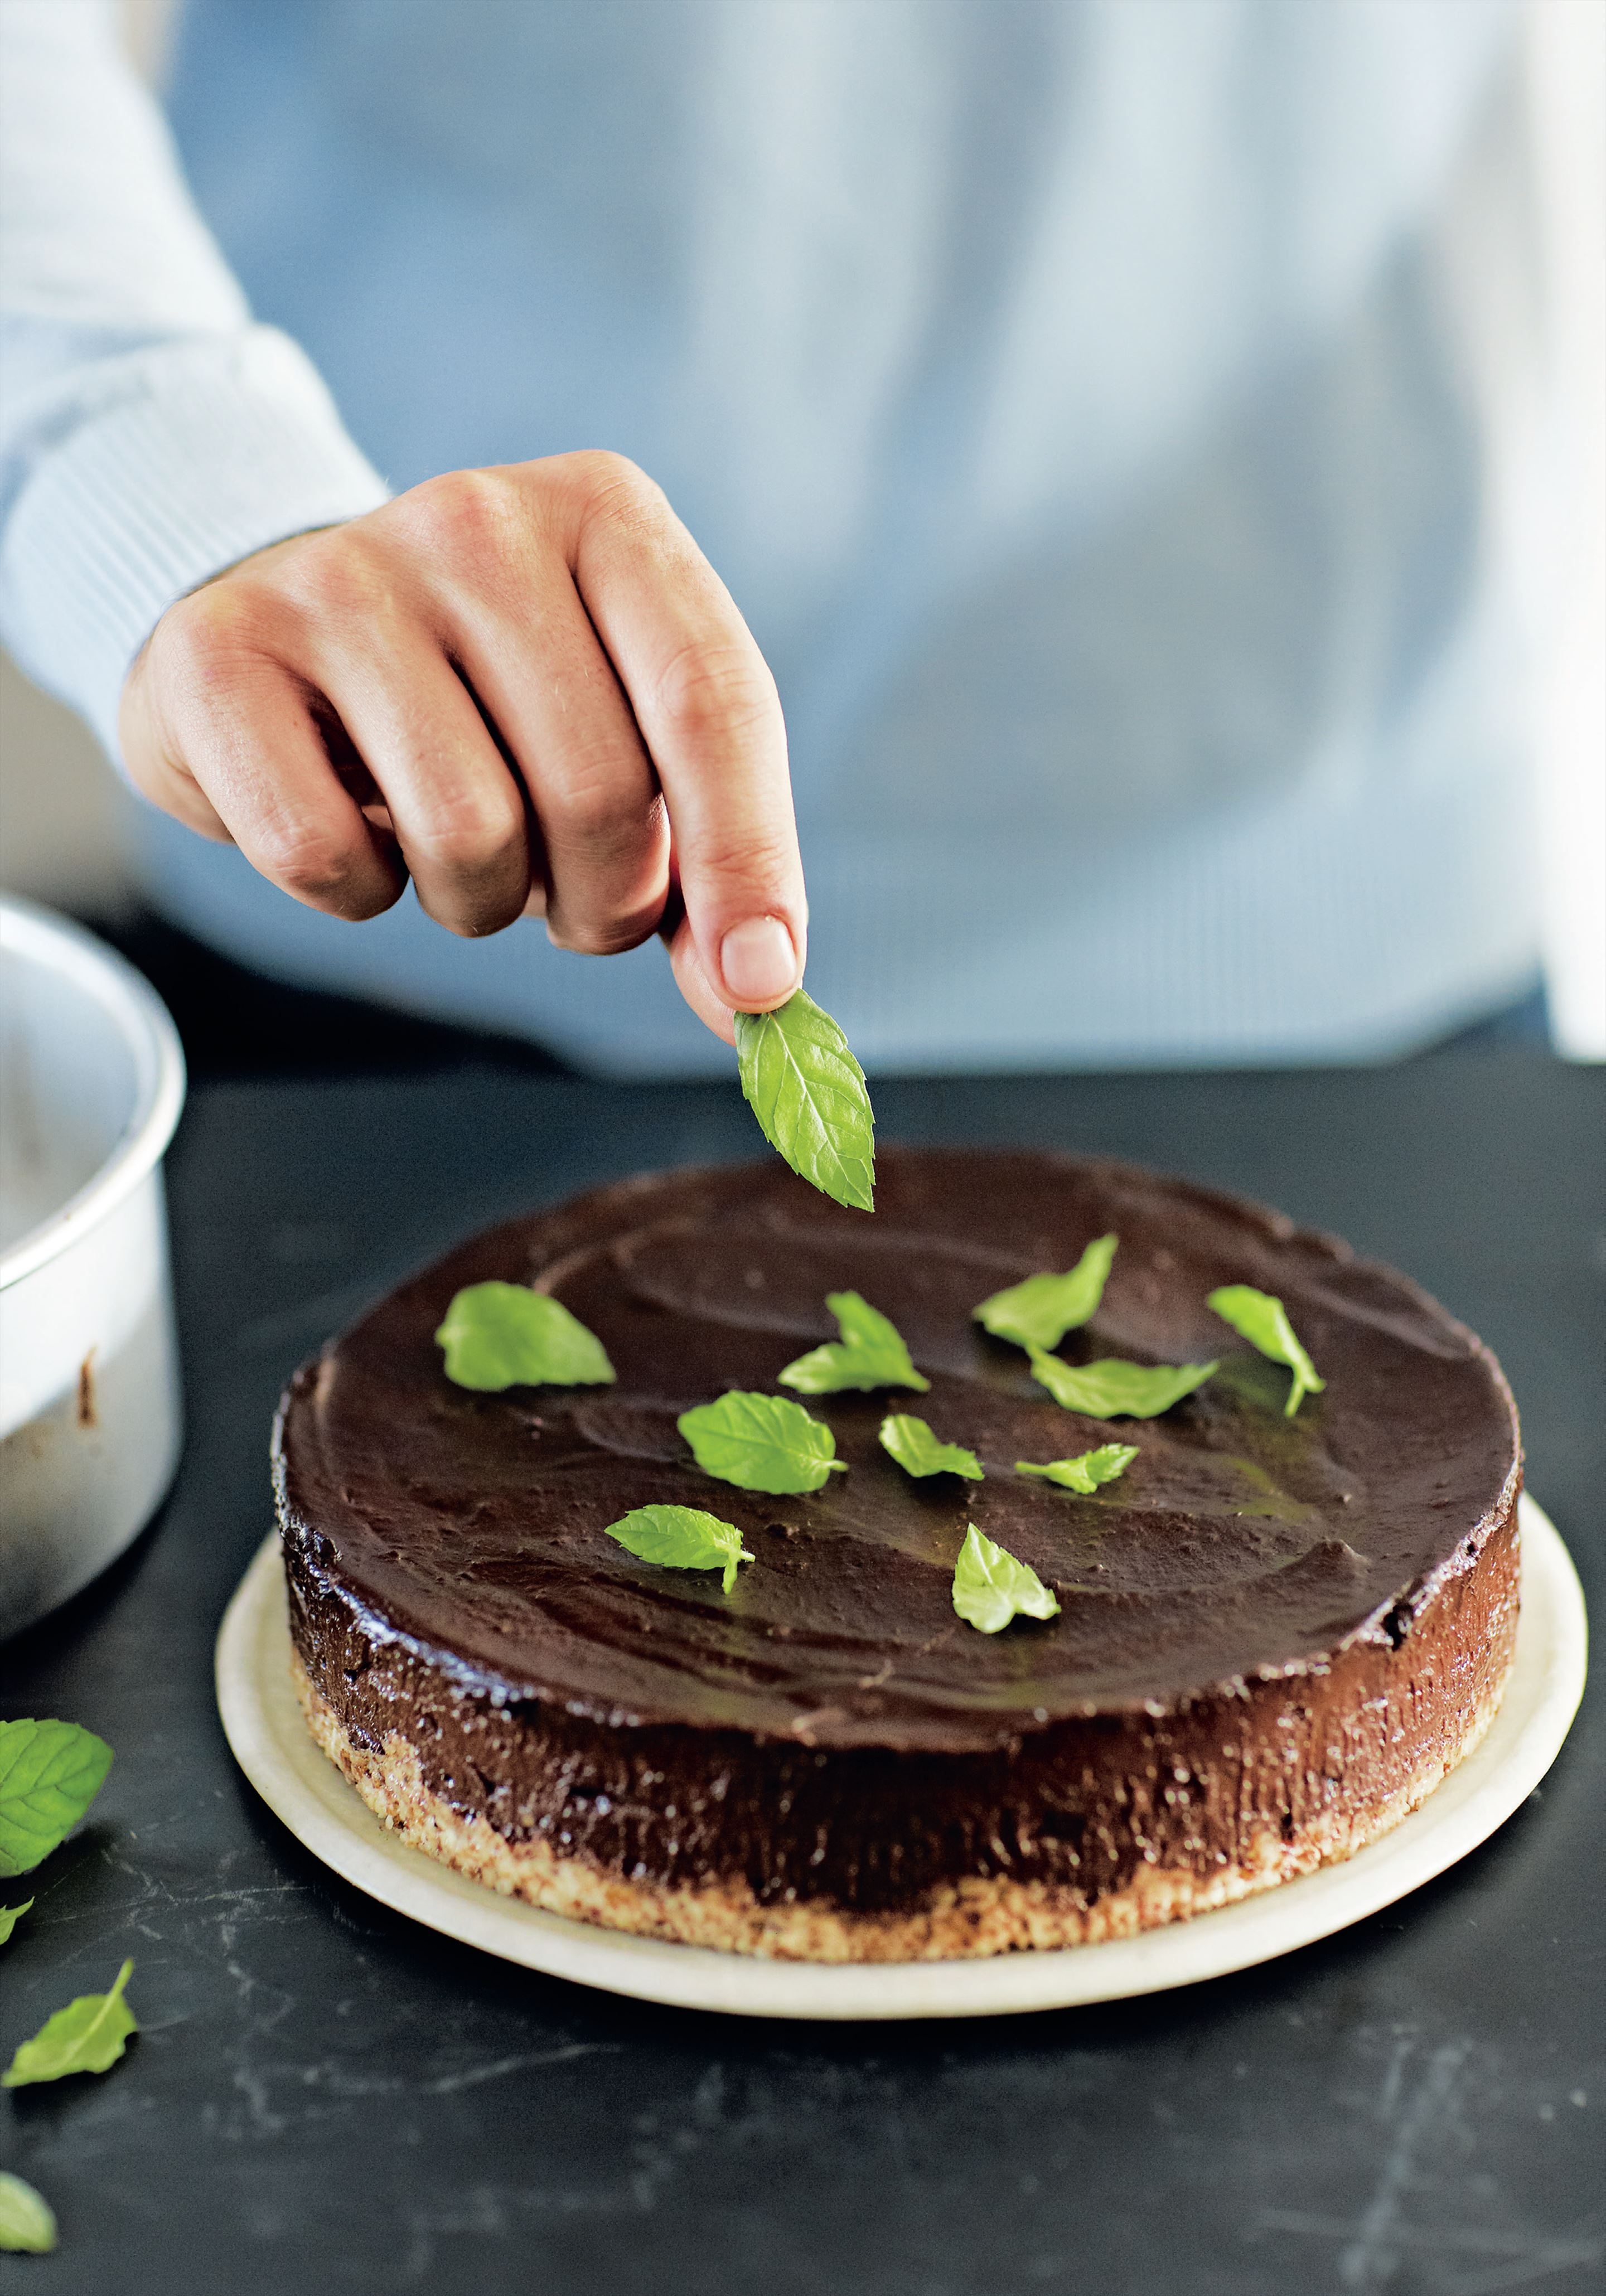 Mint chocolate no-cheese cake